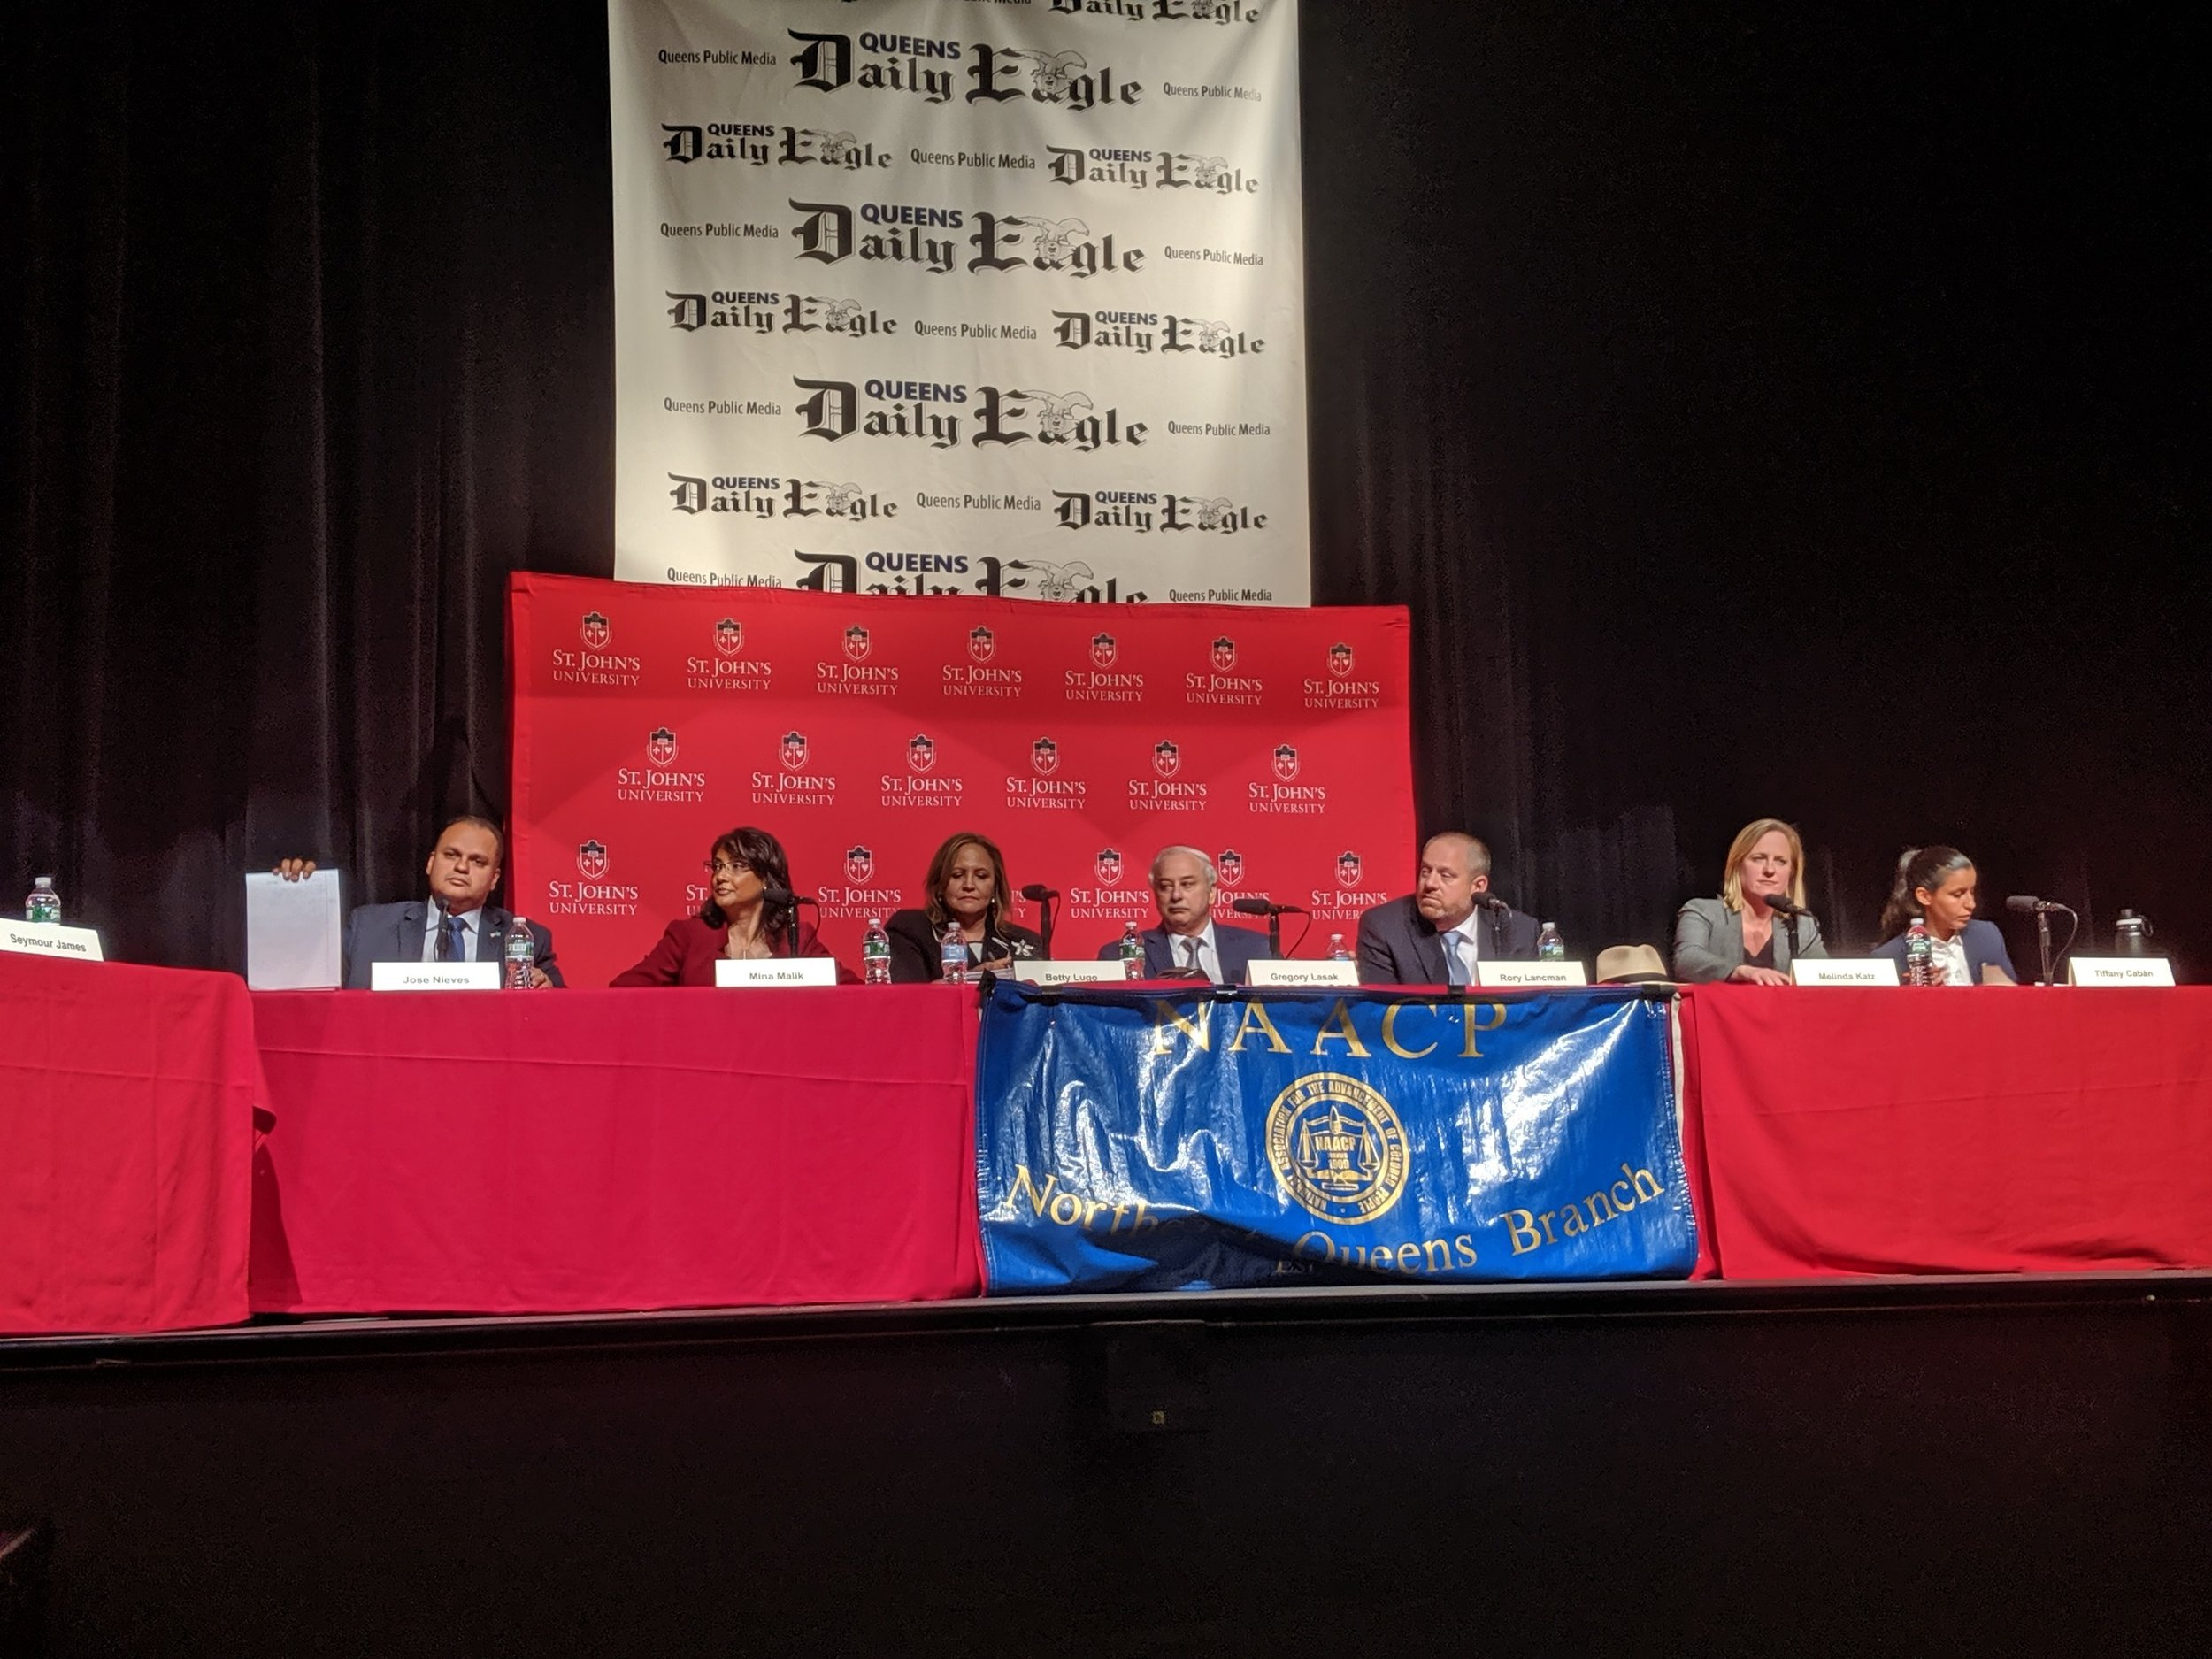 The seven candidates for Queens DA spoke at a forum hosted by the  Eagle  Thursday: public defender Tiffany Cabán, Borough President Melinda Katz, Councilmember Rory Lancman, former Judge Gregory Lasak, attorney Betty Lugo, former Civilian Complaint Review Board Director Mina Malik and former state Attorney General's Office prosecutor Jose Nieves.  Eagle  photo by Phineas Rueckert.